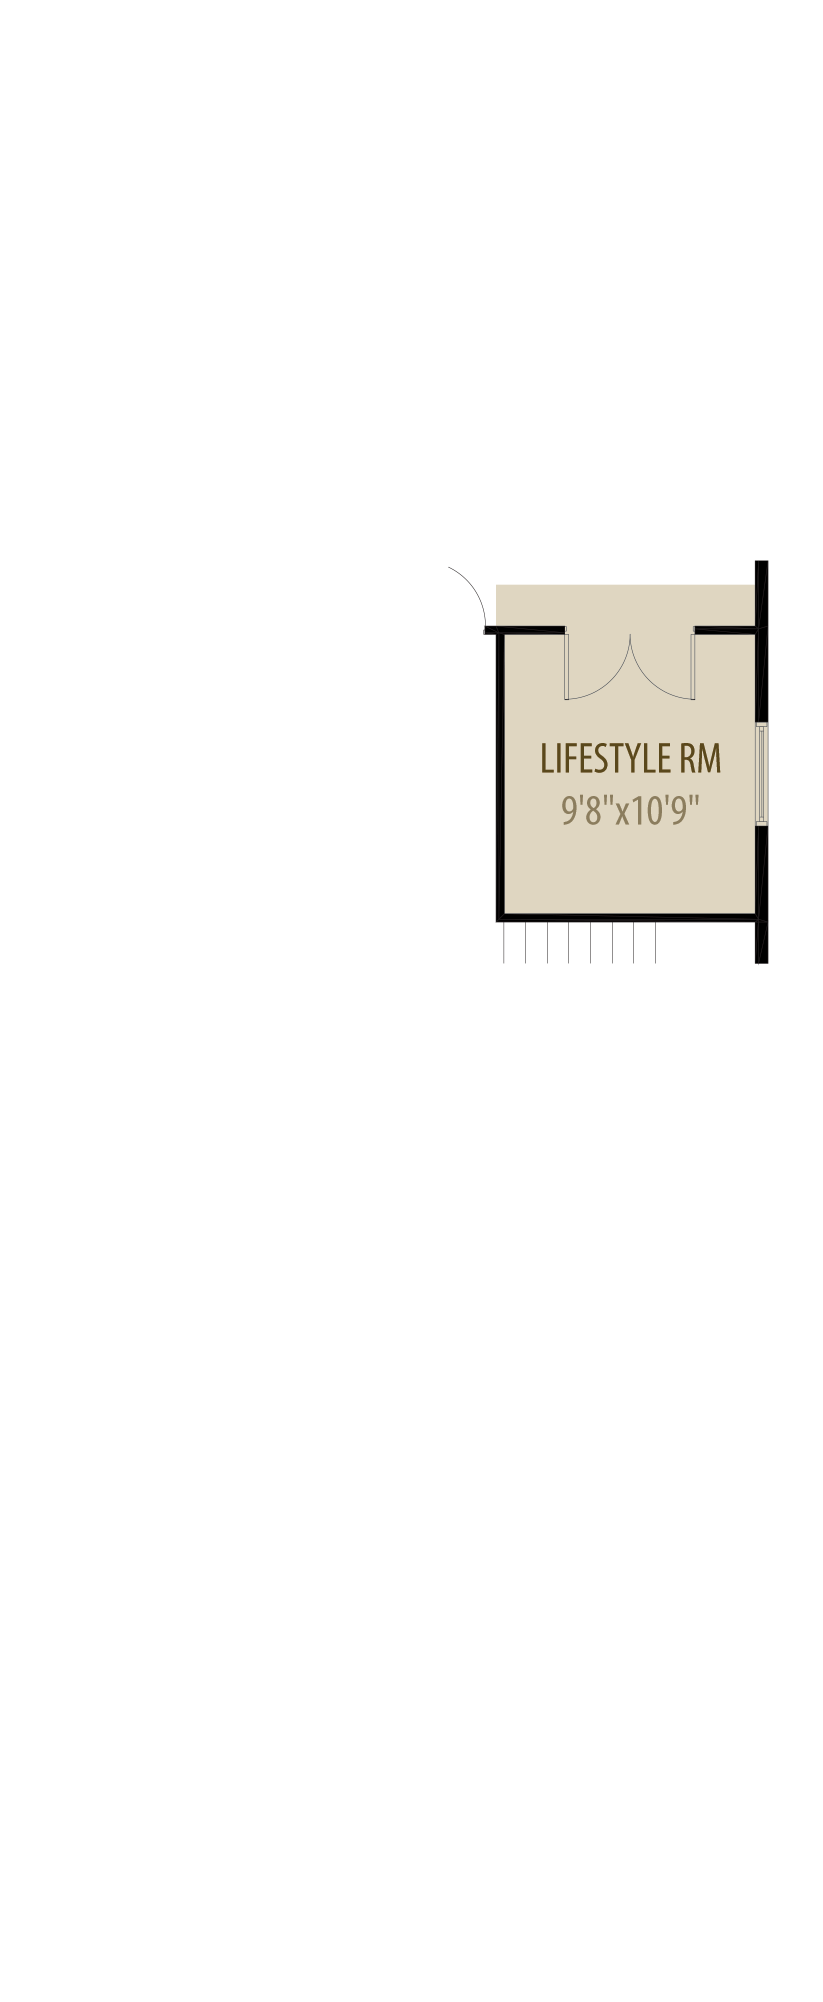 Lifestyle Room adds 120 sq ft